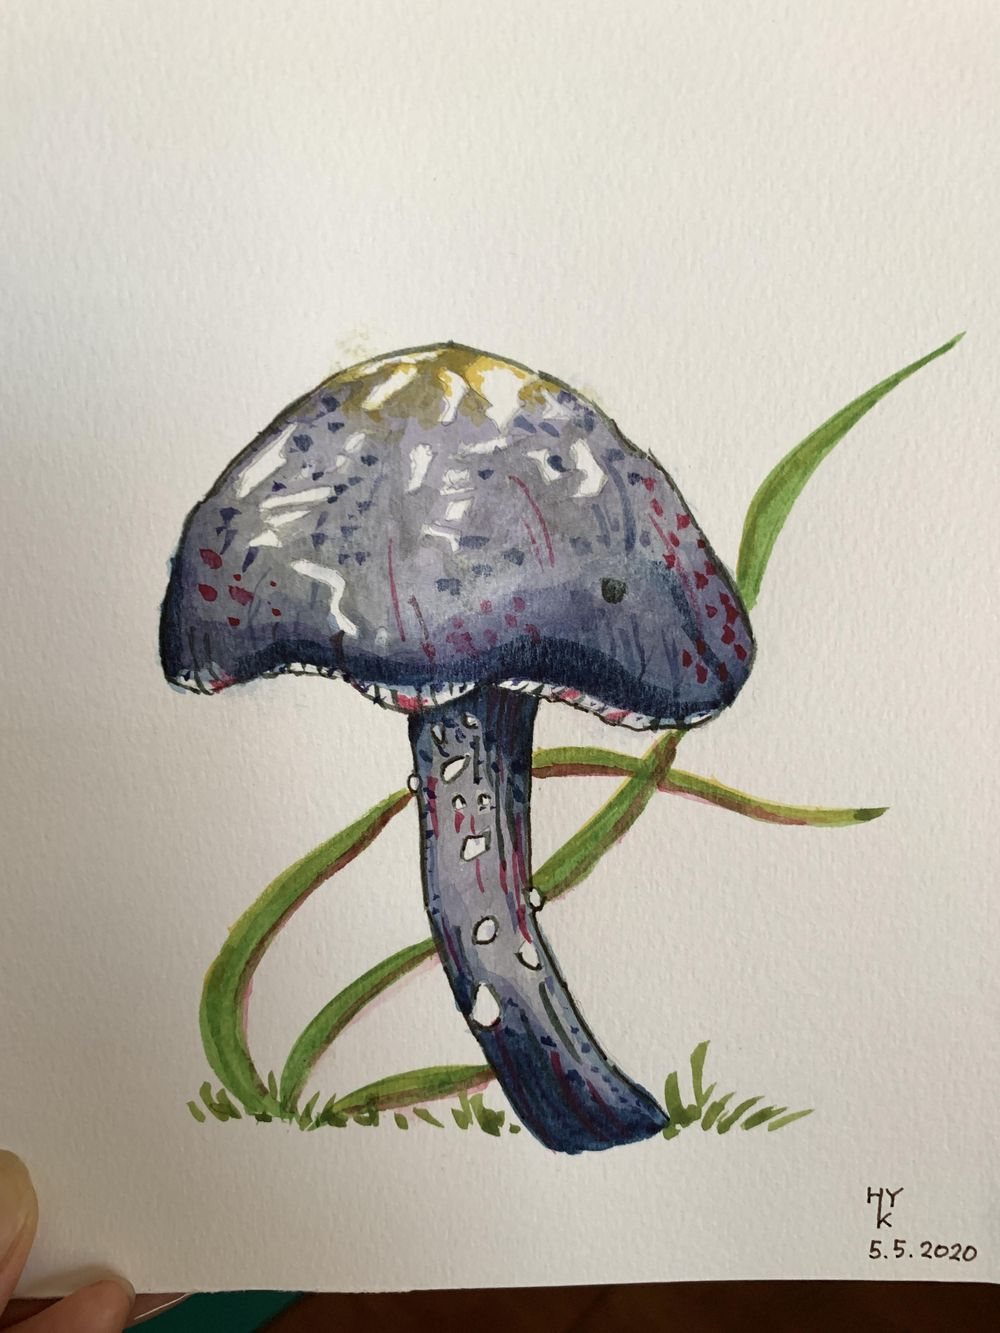 mushroom and fern painting - image 3 - student project